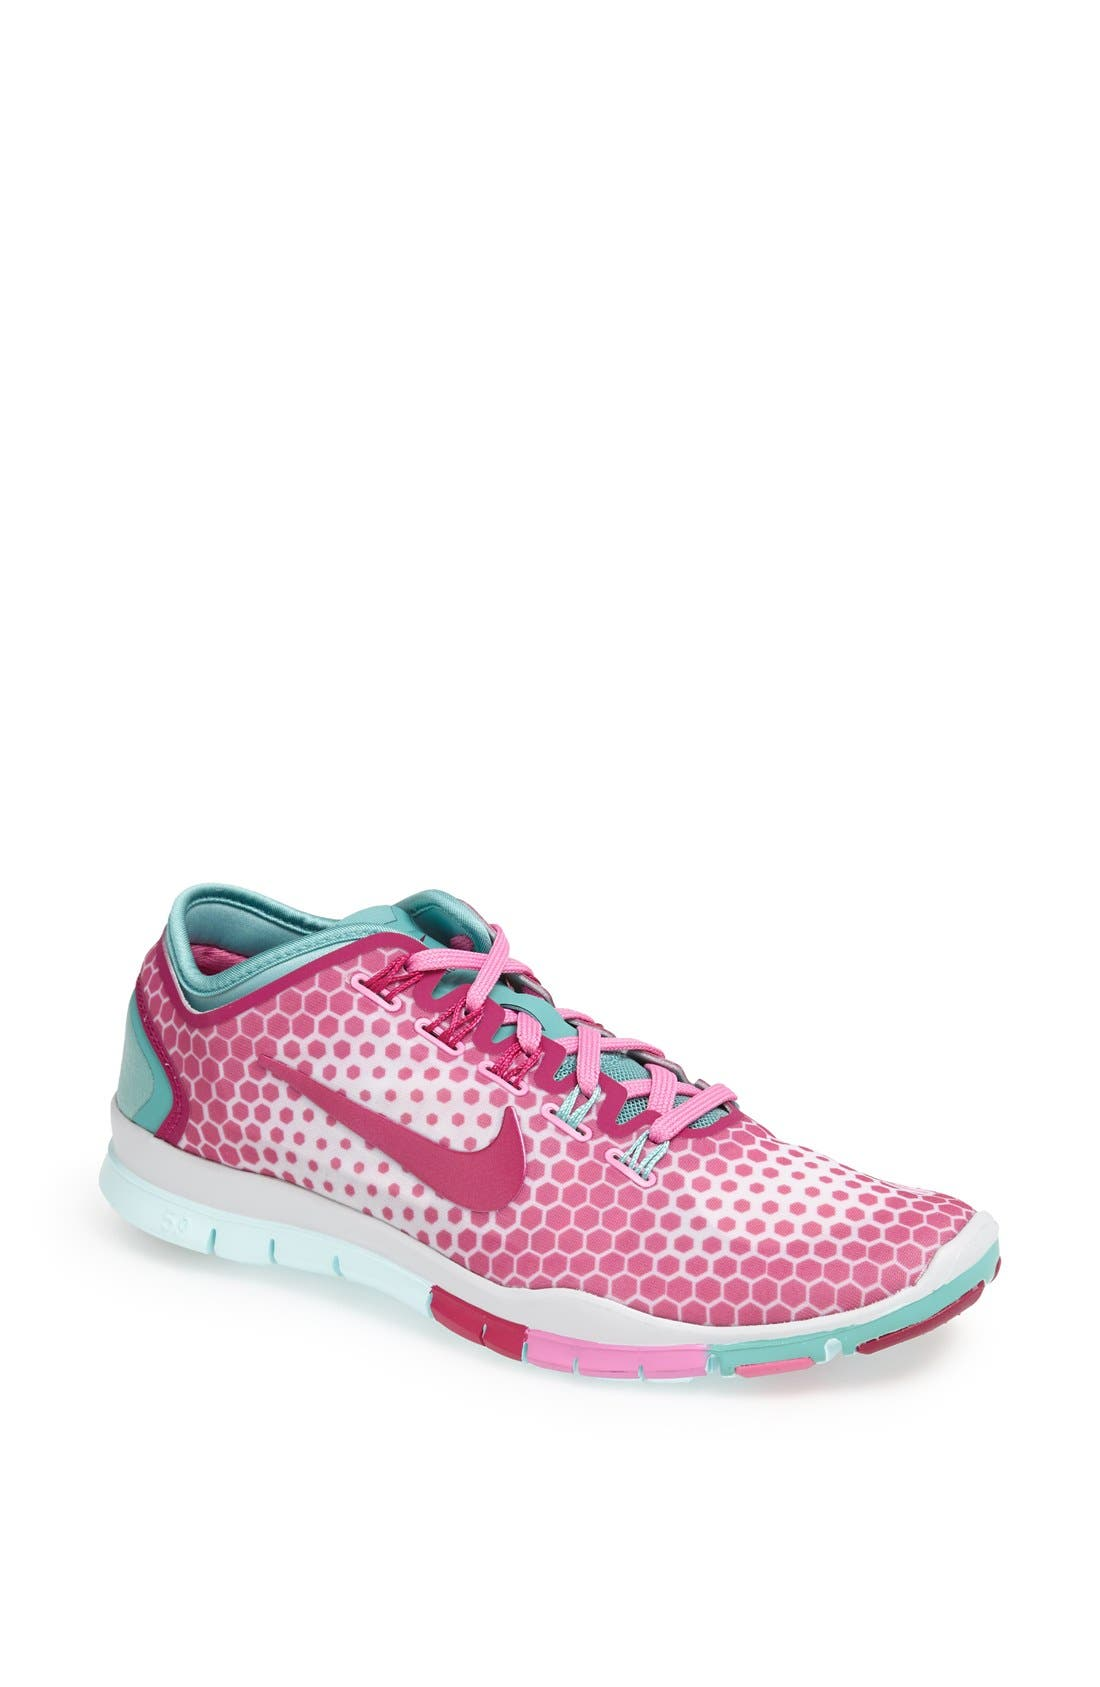 Alternate Image 1 Selected - Nike 'Free TR Connect 2' Training Shoe (Women)